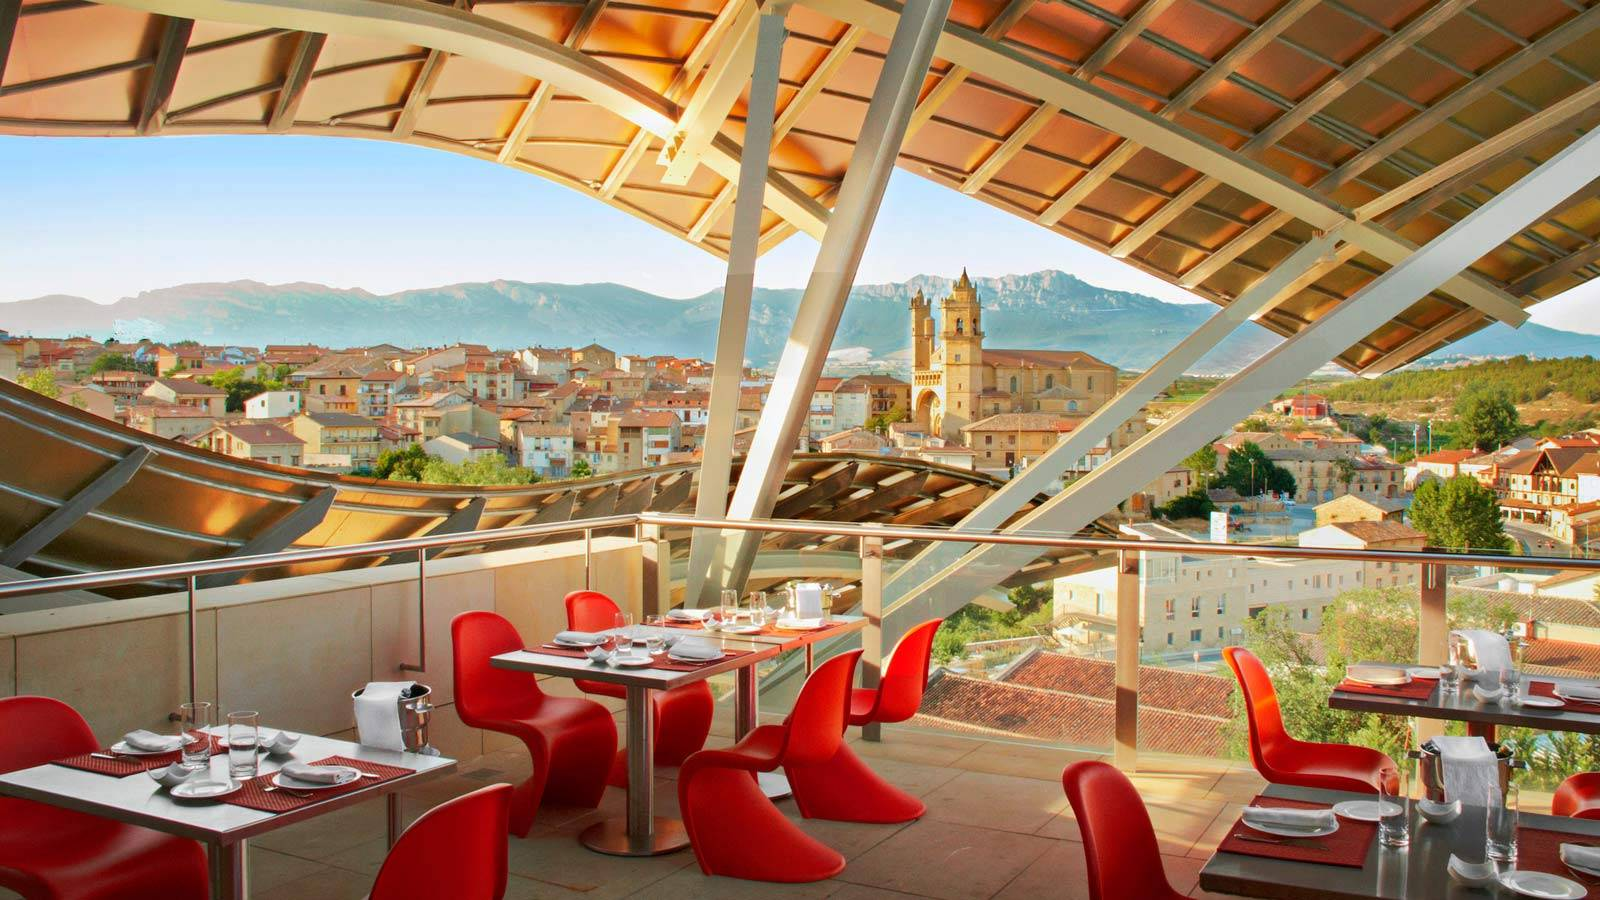 Views over the vineyards from Hotel Marques de Riscal